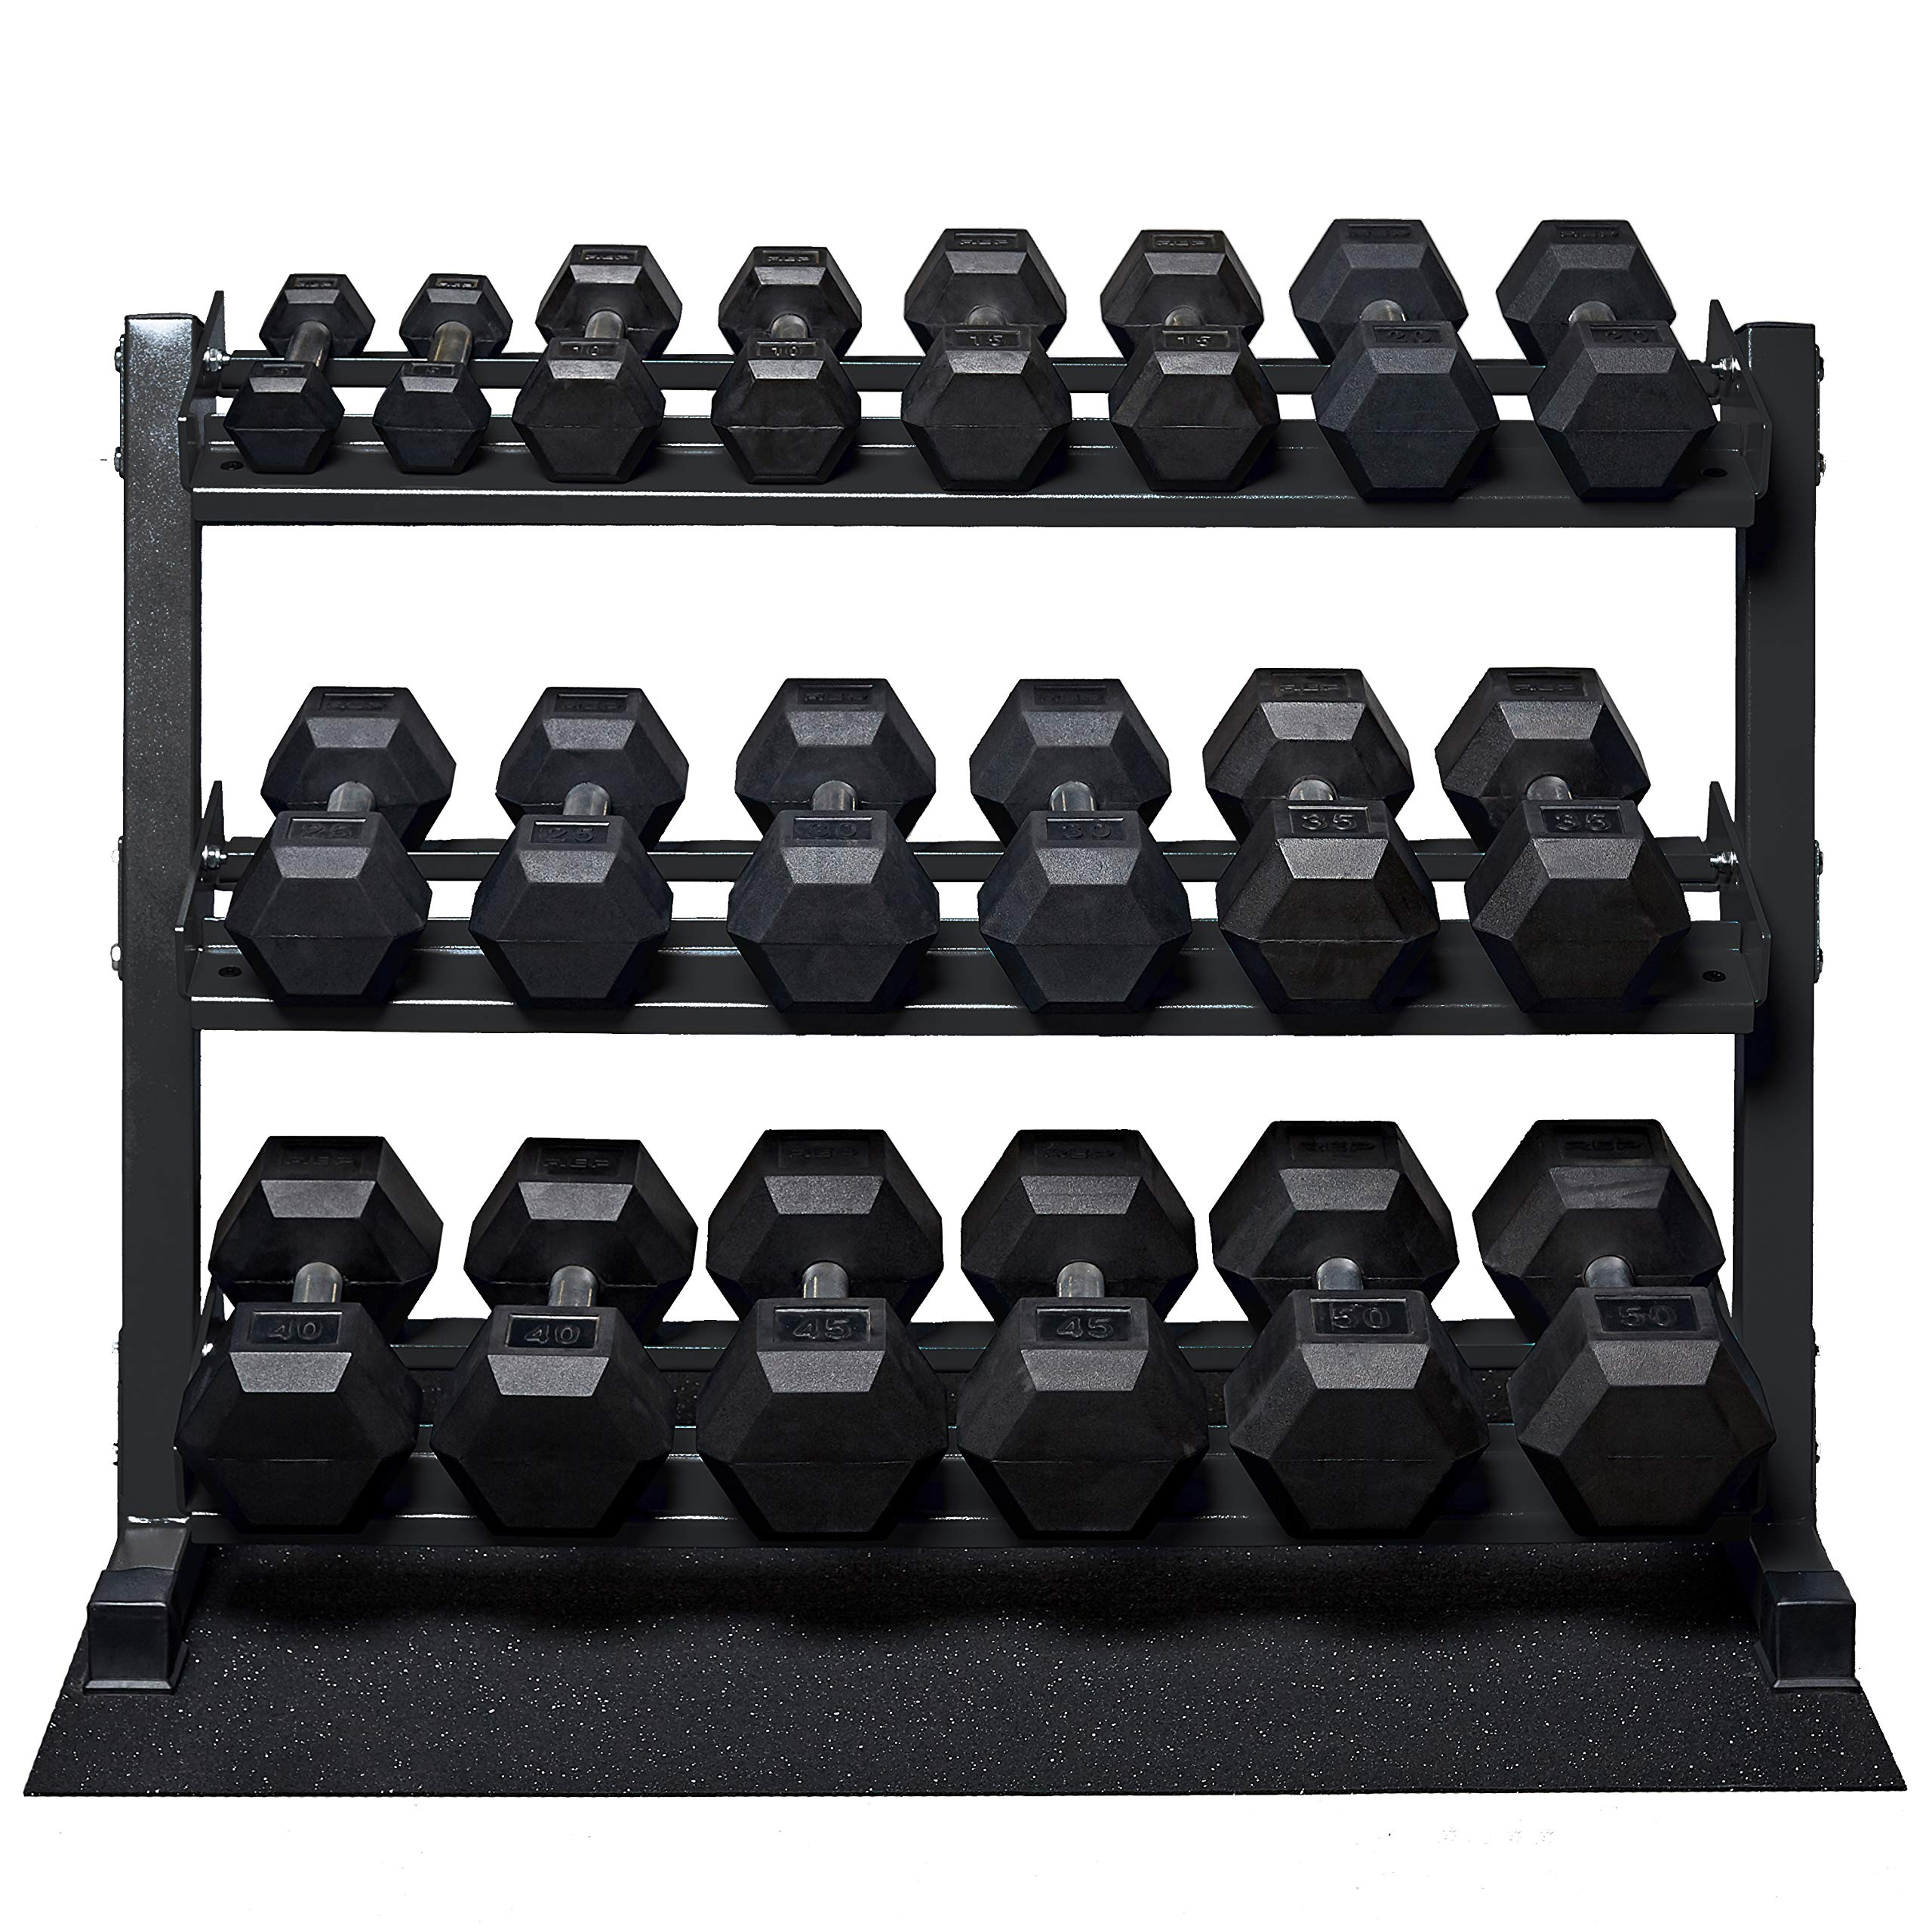 Rep Rubber Hex Dumbbell Set with Racks, 5-50 Set, 5-75 Set, 5-100 Set, 2.5-27.5 Set, 55-75, 80-100, or 105-125 Set. Available with and Without Racks. (OptionA: 5-50withMetallicBlackStand)